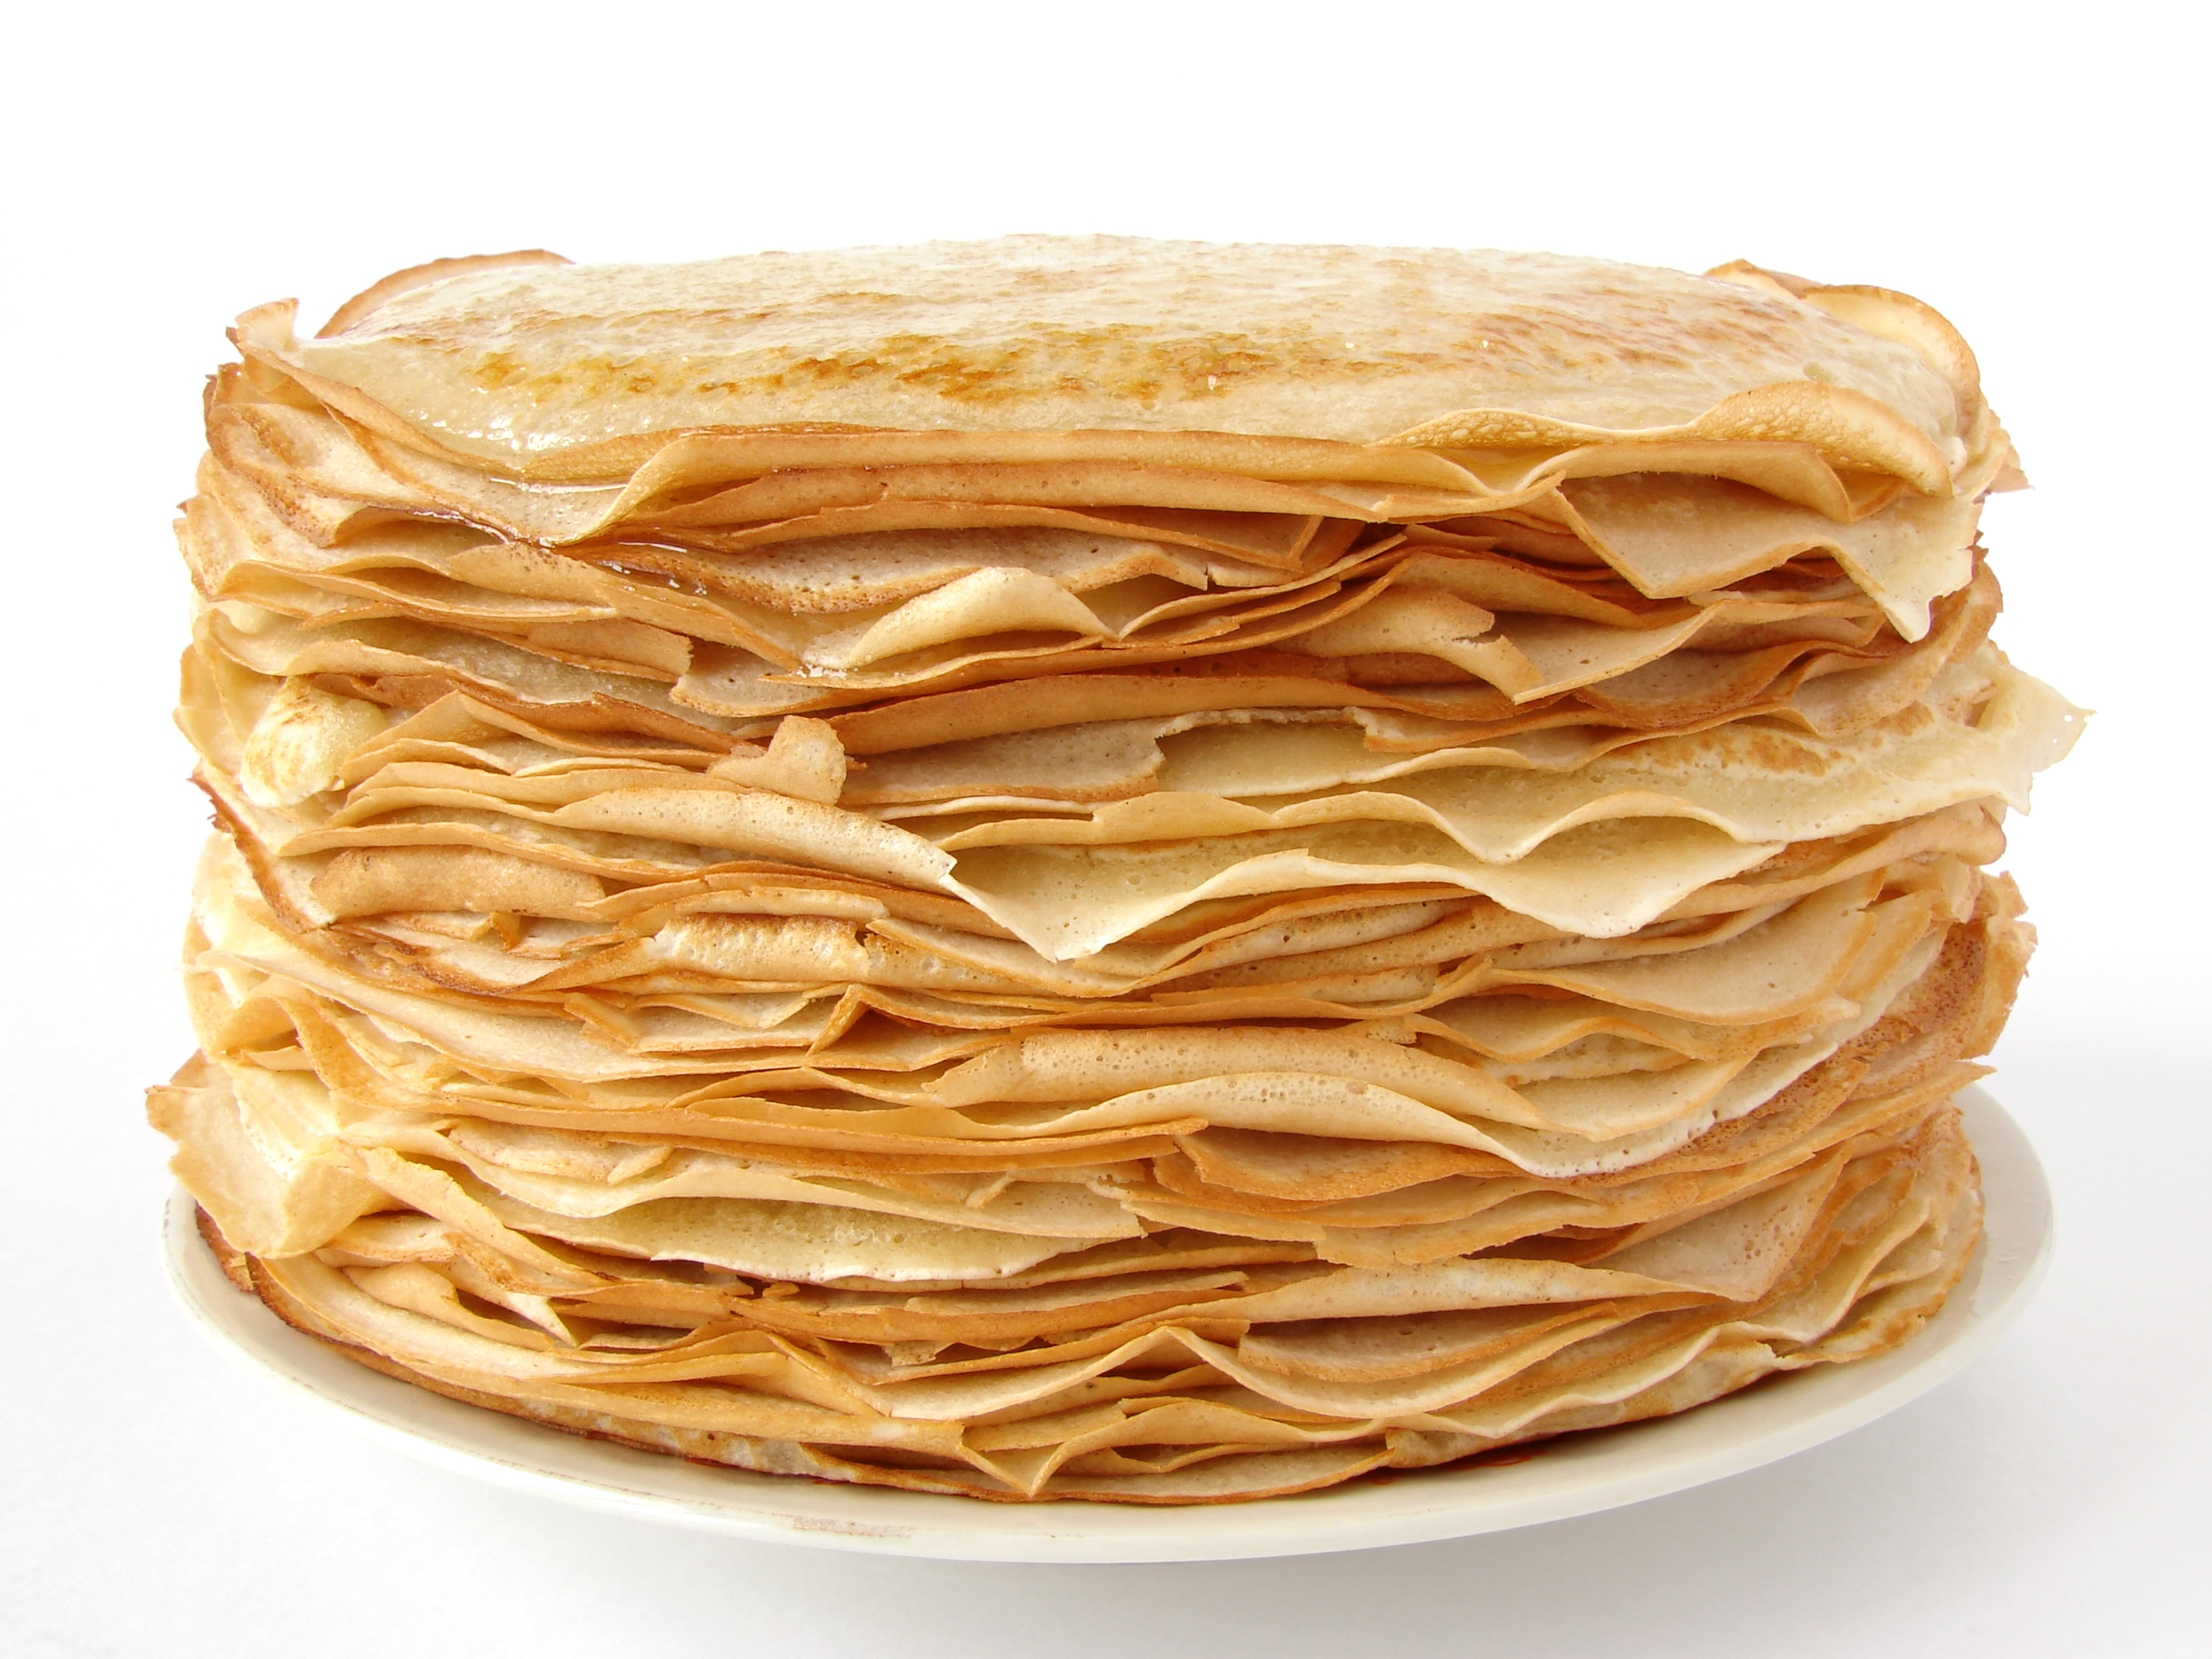 A stack of crepe pancakes on a white plate